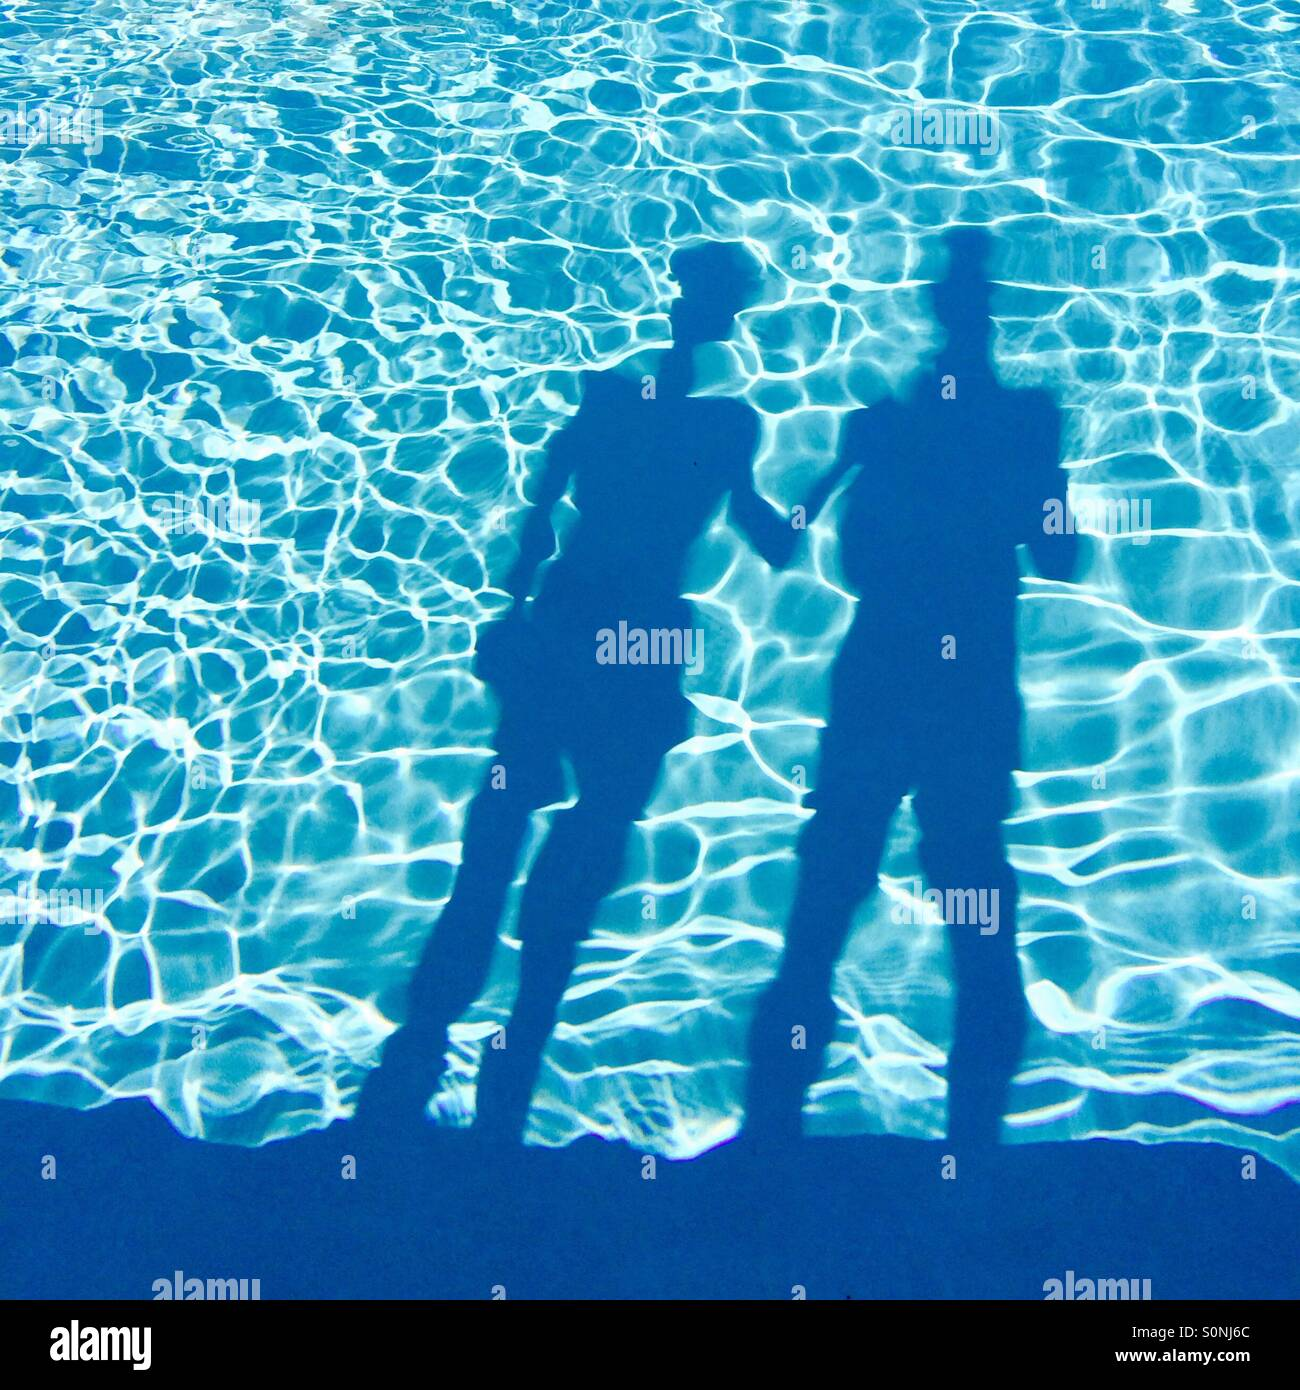 Shadow of a couple on vacation standing beside a swimming pool. - Stock Image